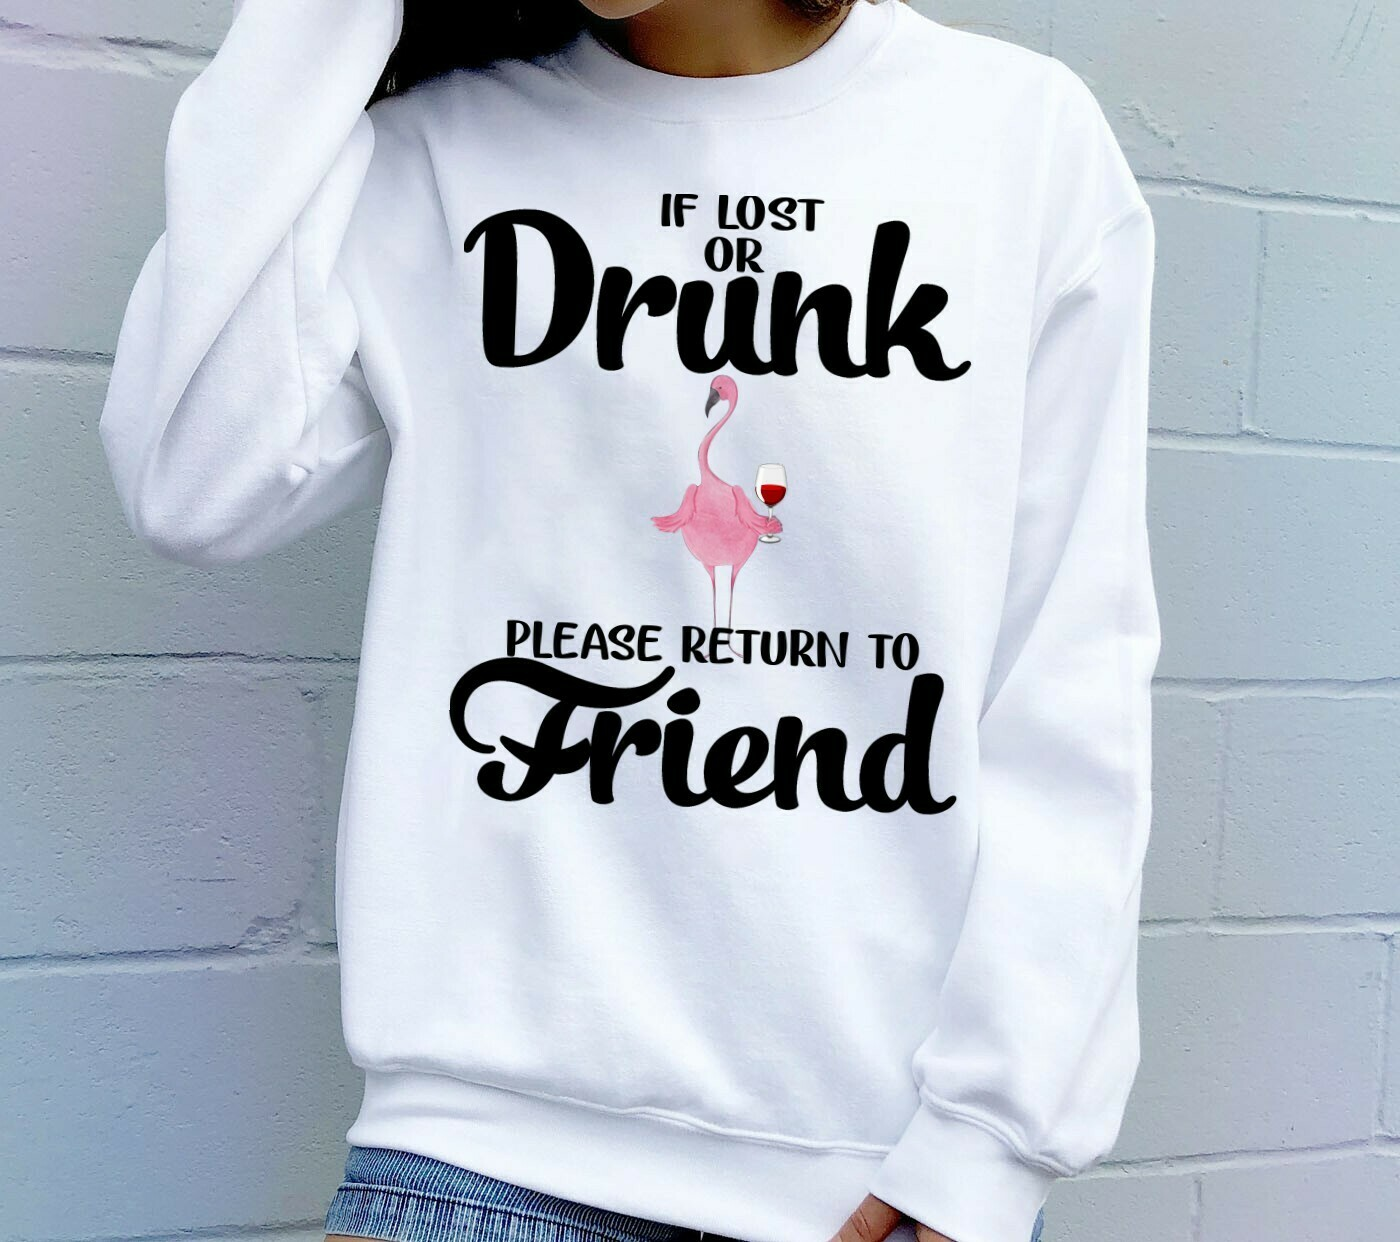 Flamingo Friends Wine Shirt If Lost Or Drunk Return To Friend, I'm The Friend The Help Best Friends Drinking Couple Matching Gifts T-shirt Long Sleeve Sweatshirt Hoodie Jolly Family Gifts